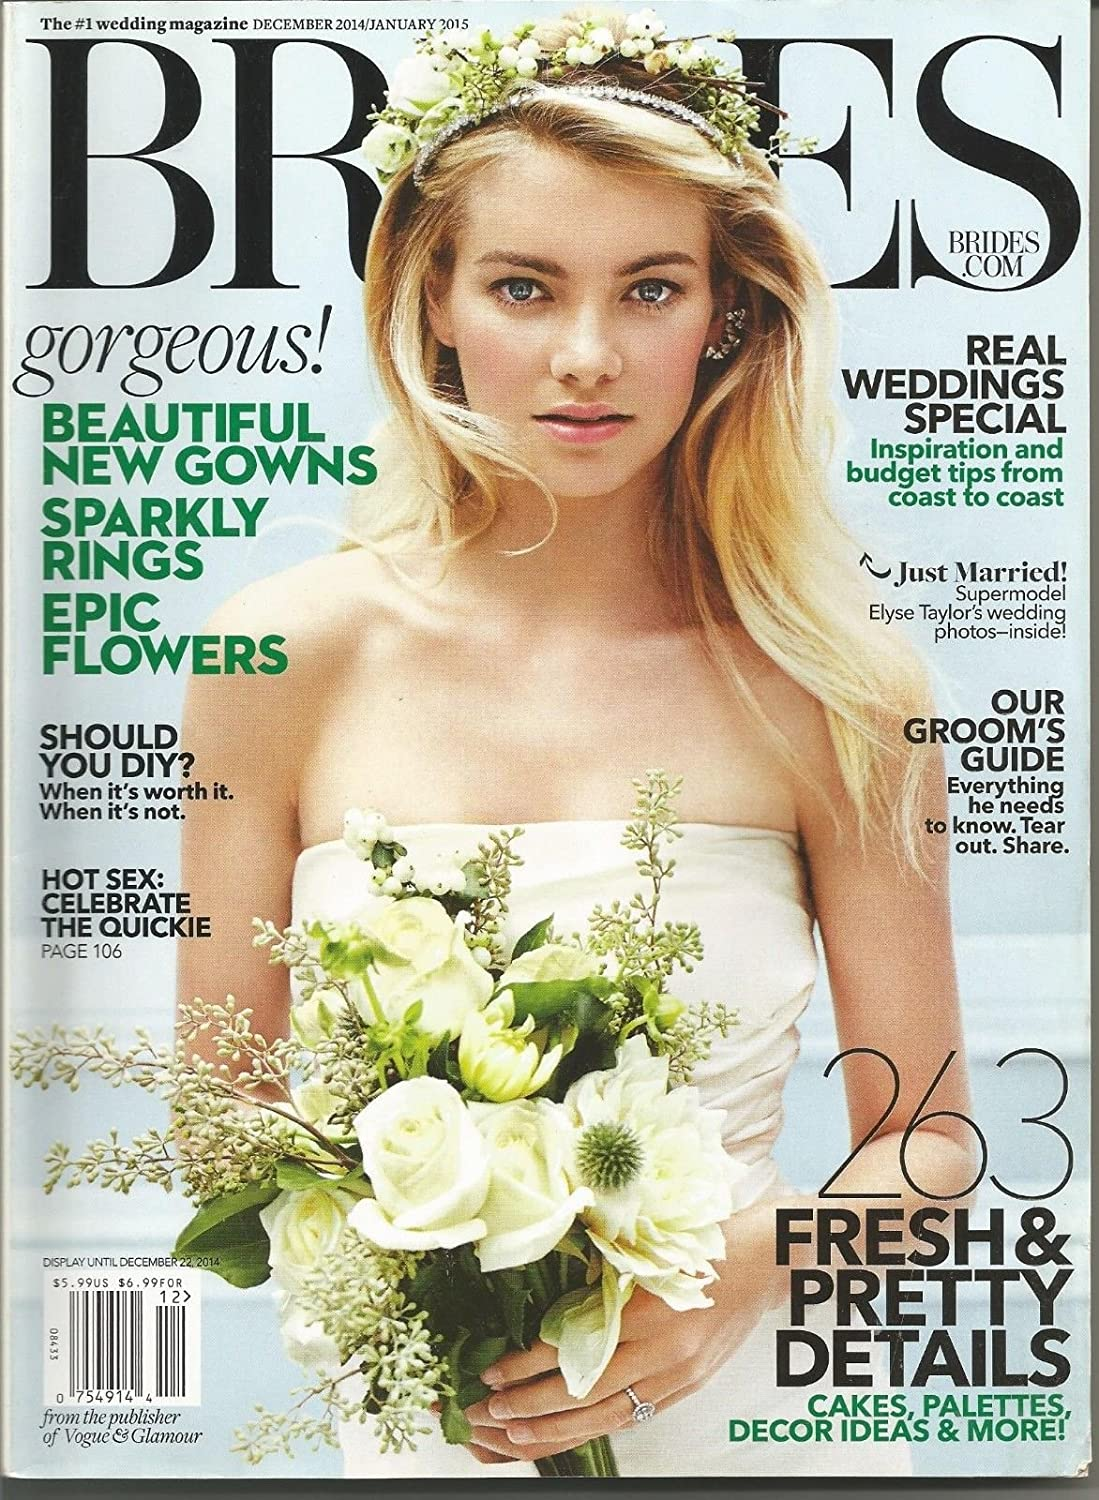 BRIDES, DECEMBER/JANUARY 2015, THE BEST YEAR OF YOUR LIFE STARTS HERE! s3457